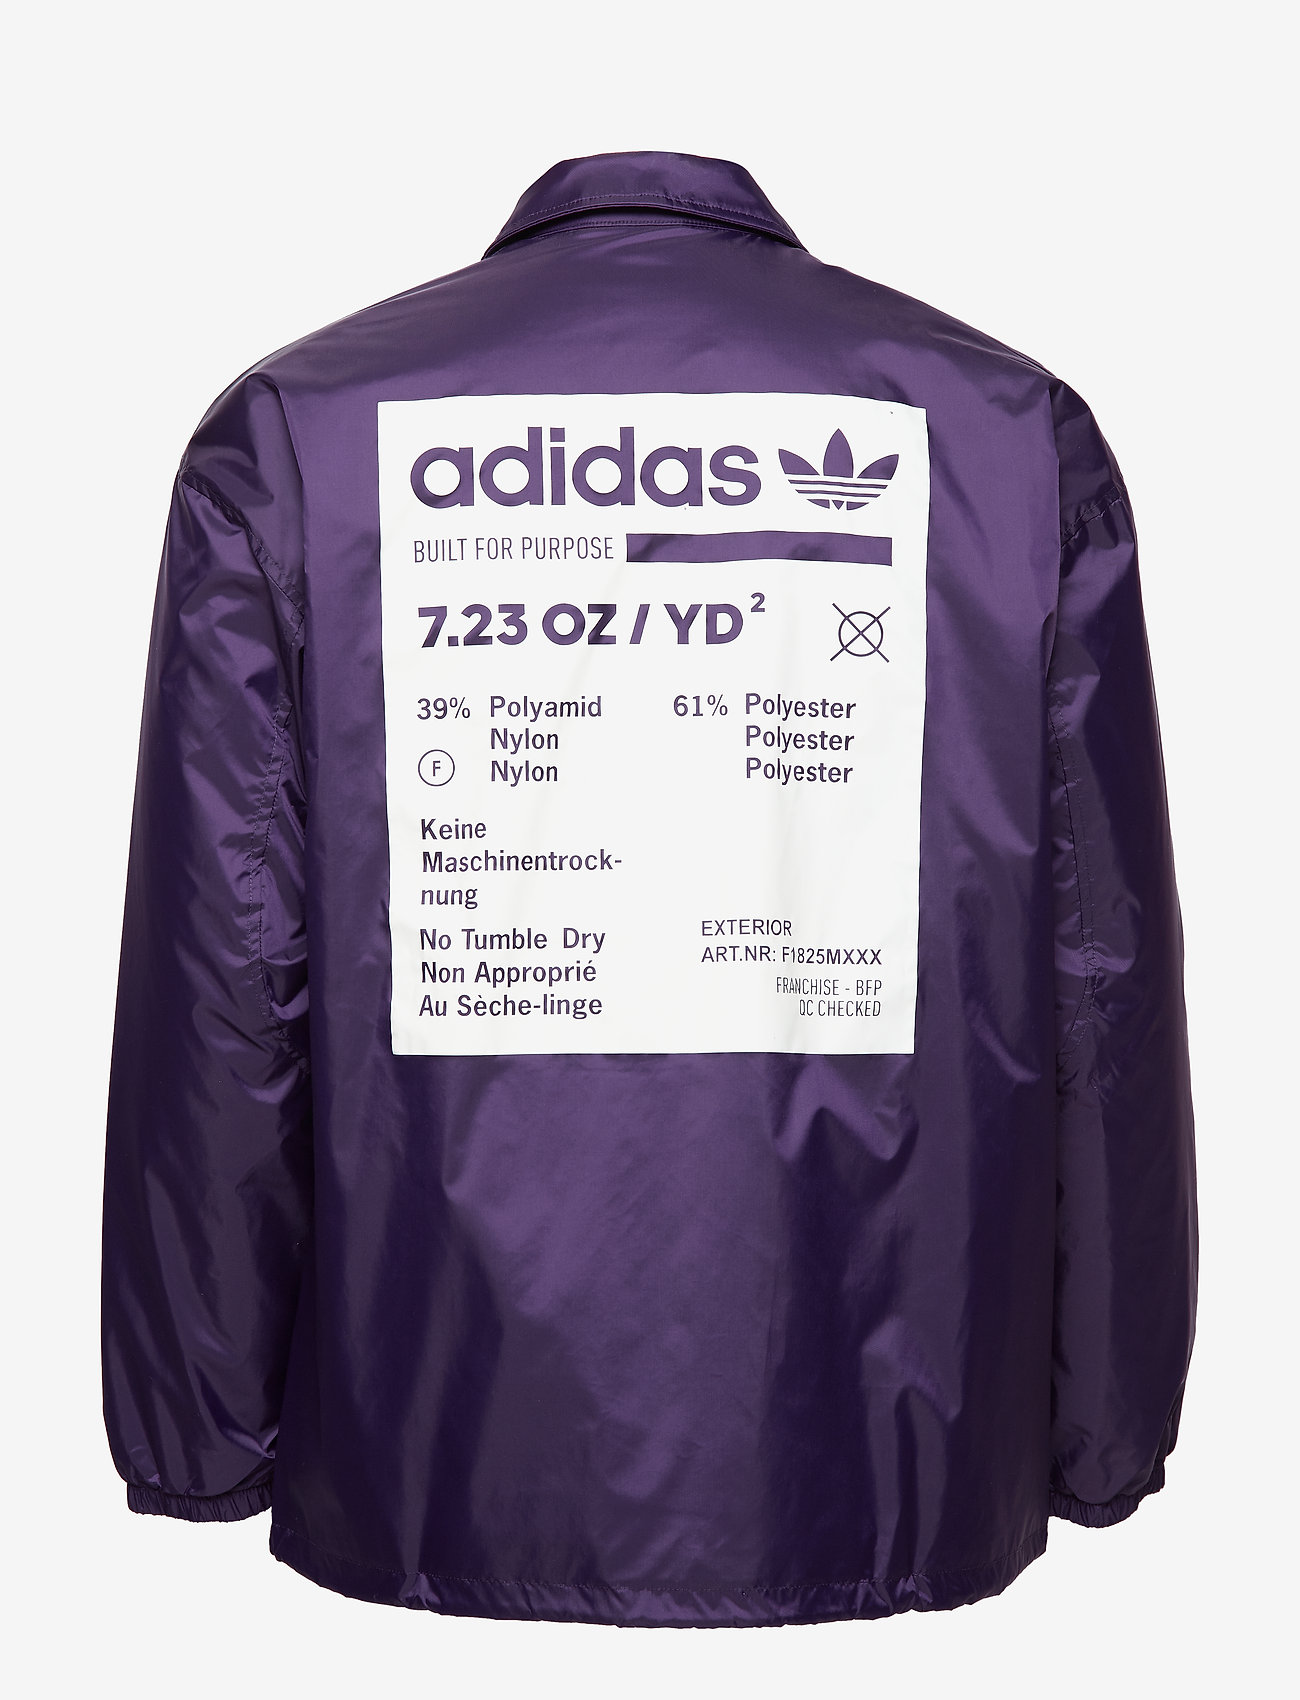 adidas Originals - KAVAL JACKET - sports jackets - drkvio/clowhi